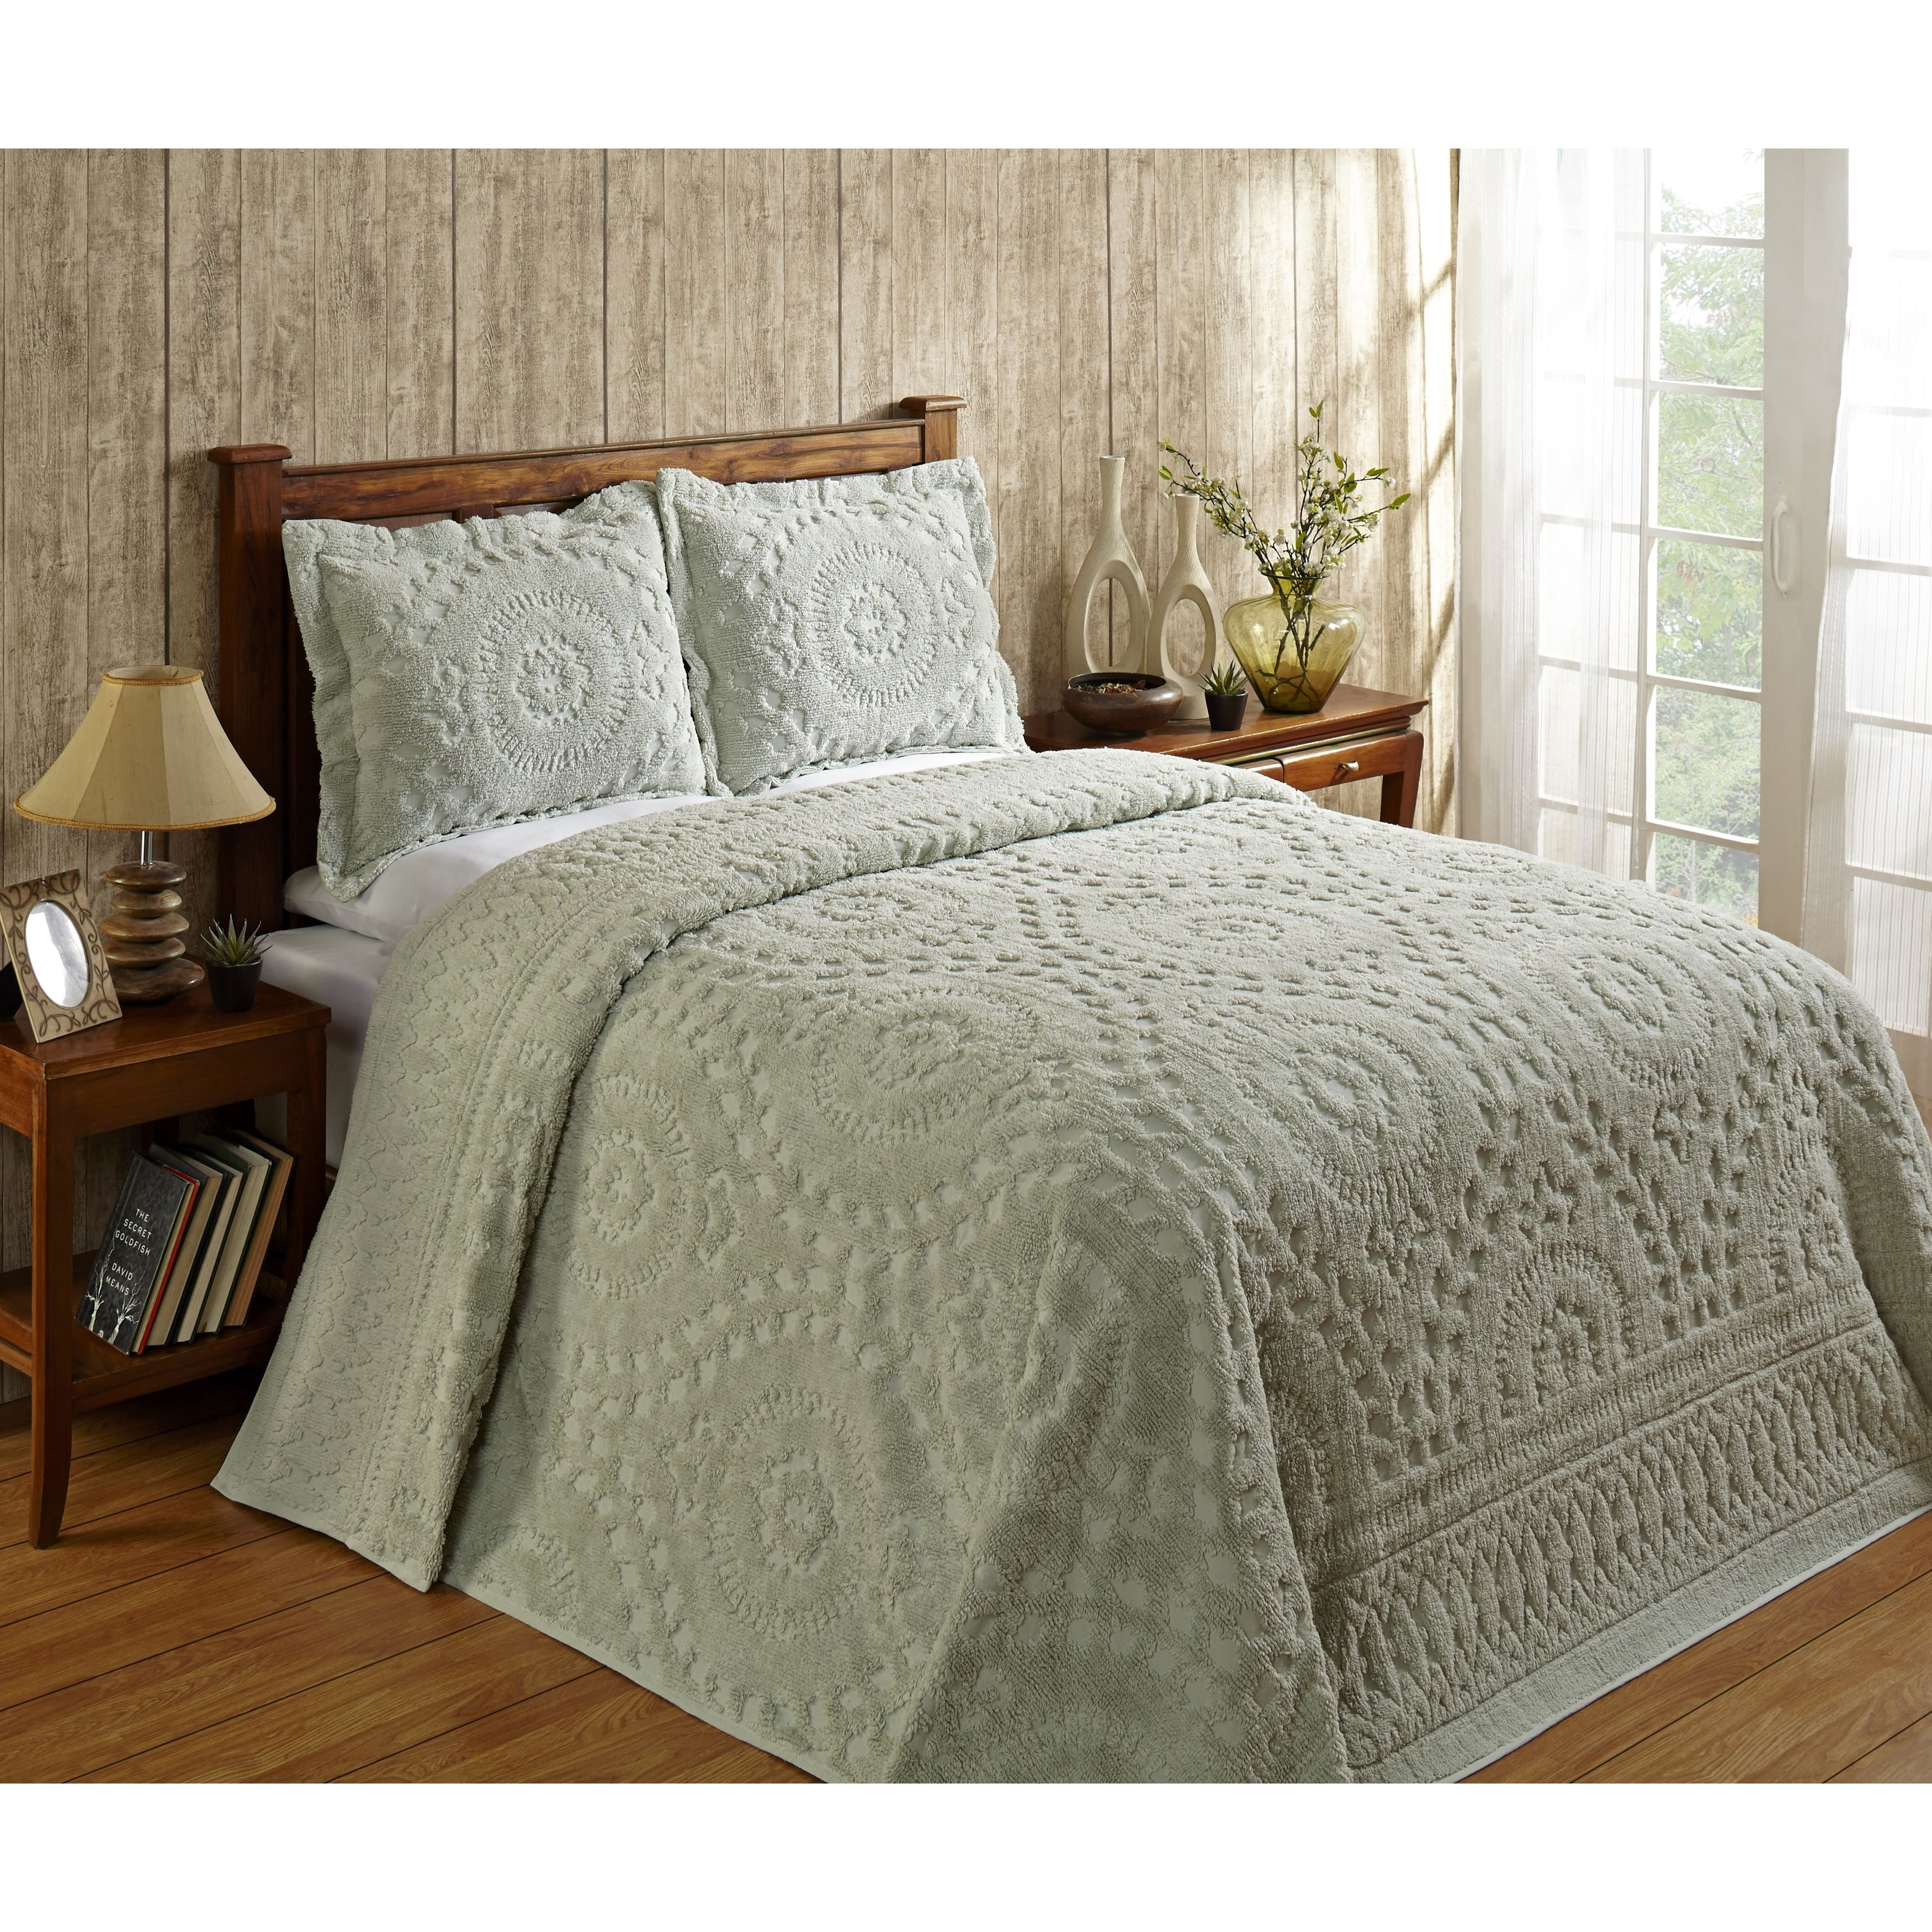 Better Trends Rio Collection In Floral Design 100 Cotton Tufted